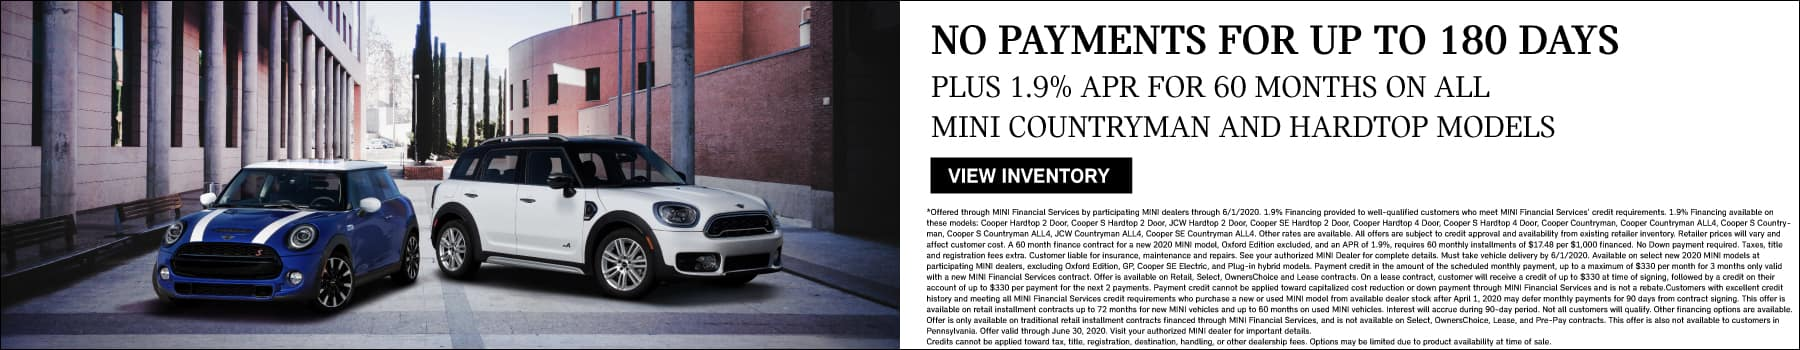 no payments for 180 days on countryman and hardtop models